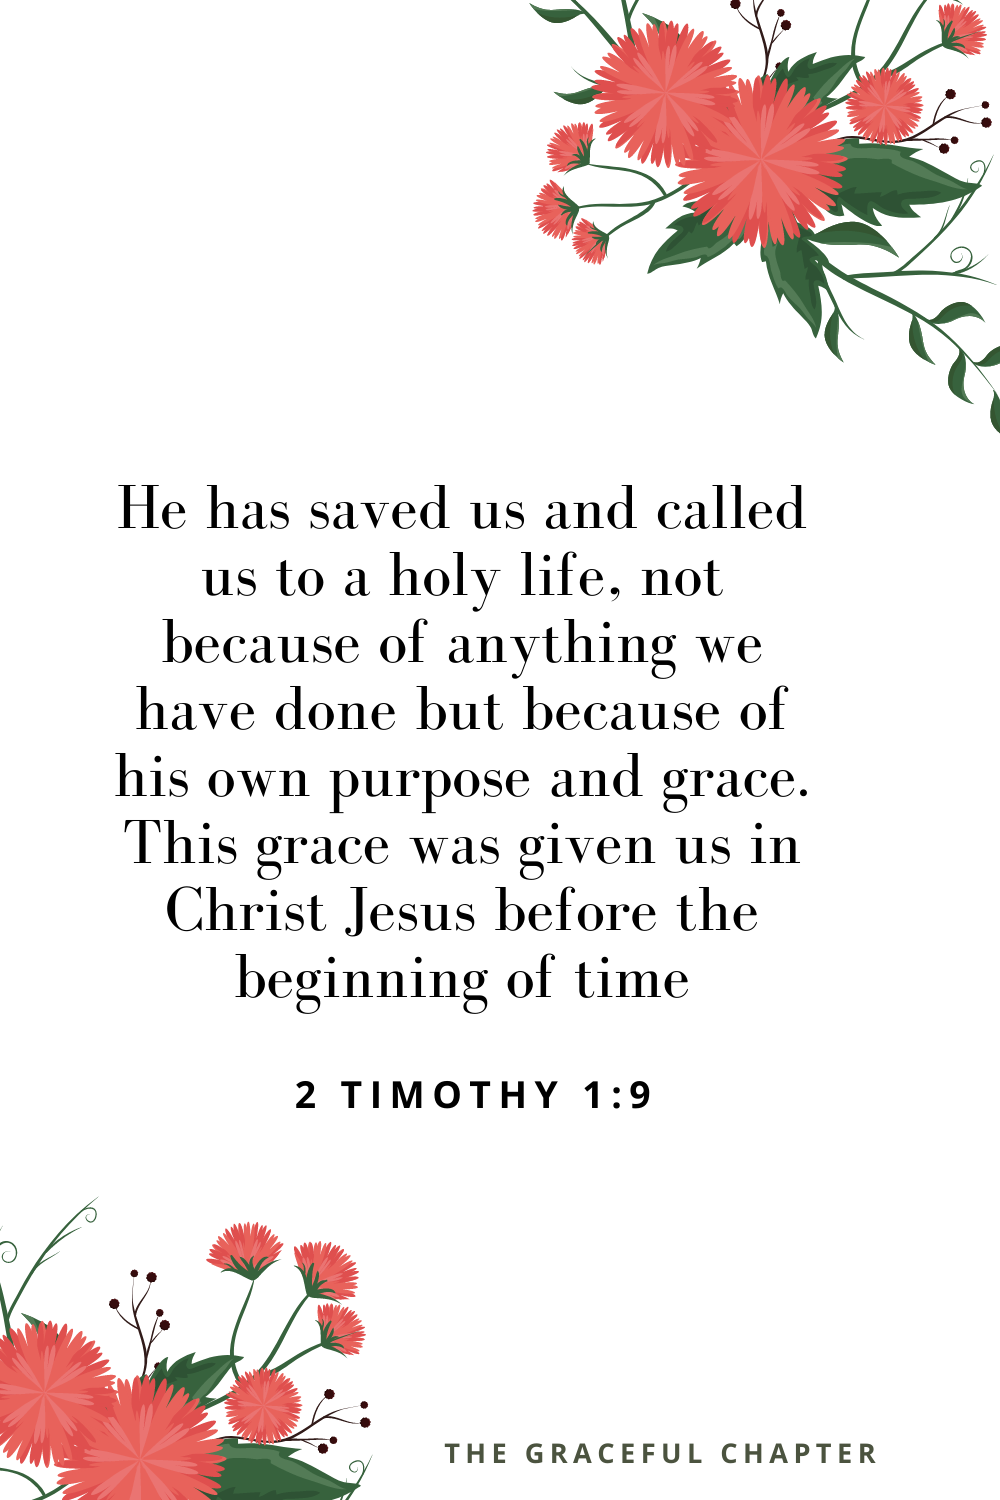 He has saved us and called us to a holy life, not because of anything we have done but because of his own purpose and grace. This grace was given us in Christ Jesus before the beginning of time 2 Timothy 1:9